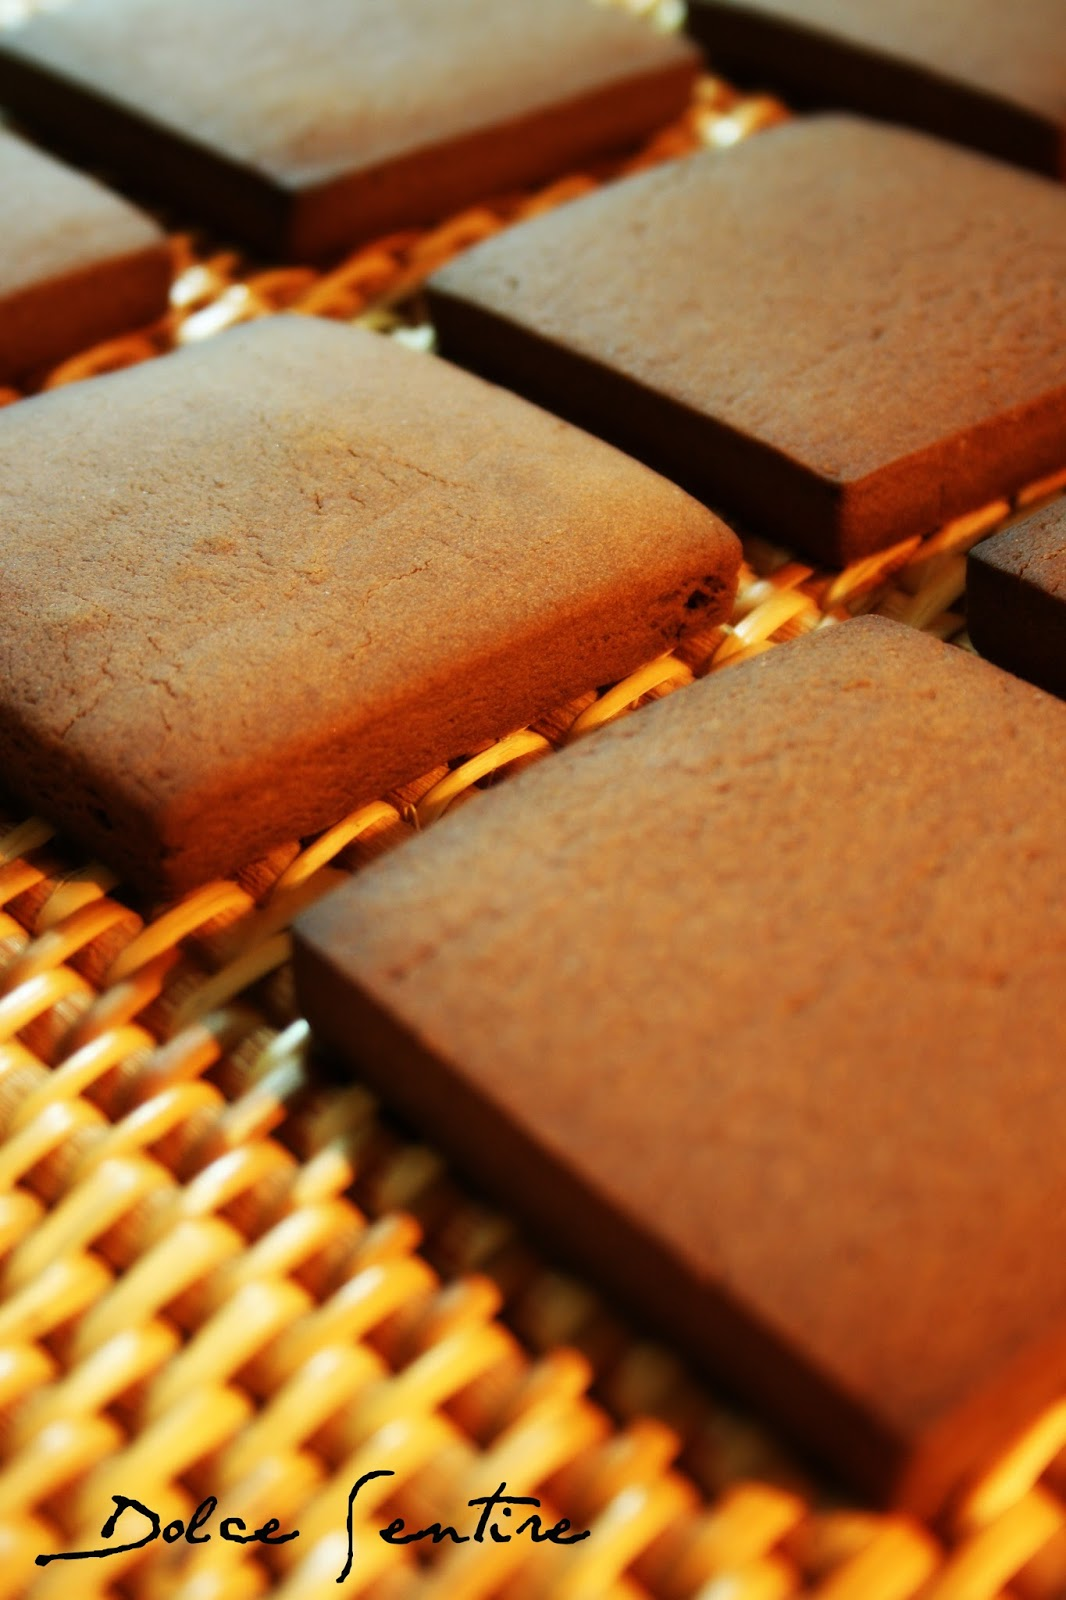 Puro placer: Galletas de Chocolate amargo y Mandarina